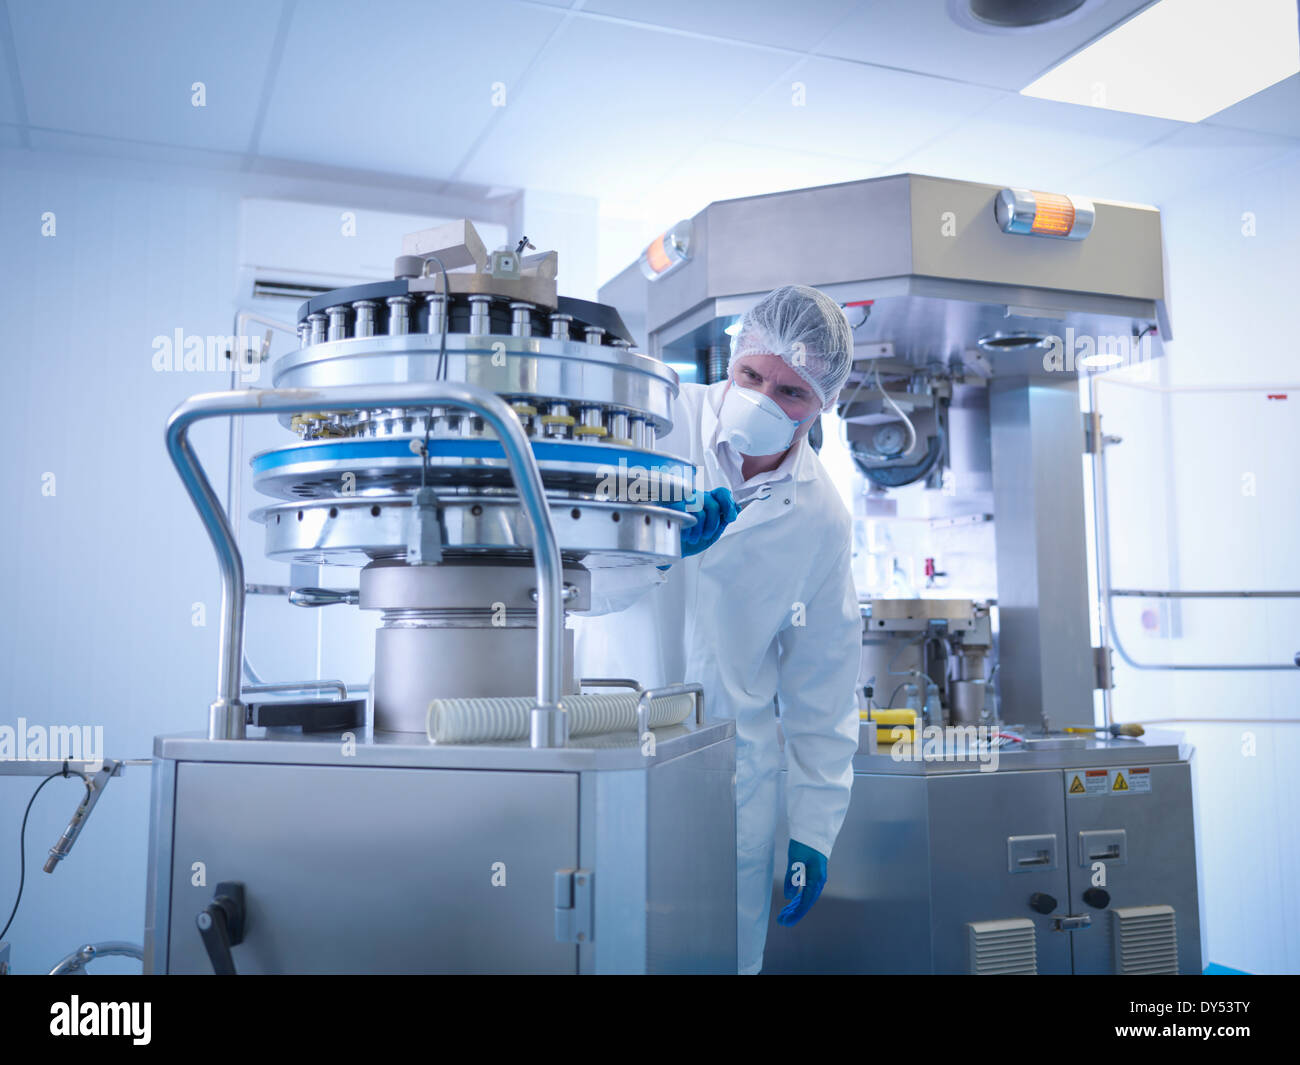 Engineer performing maintenance on tablet manufacturing machine in pharmaceutical factory - Stock Image